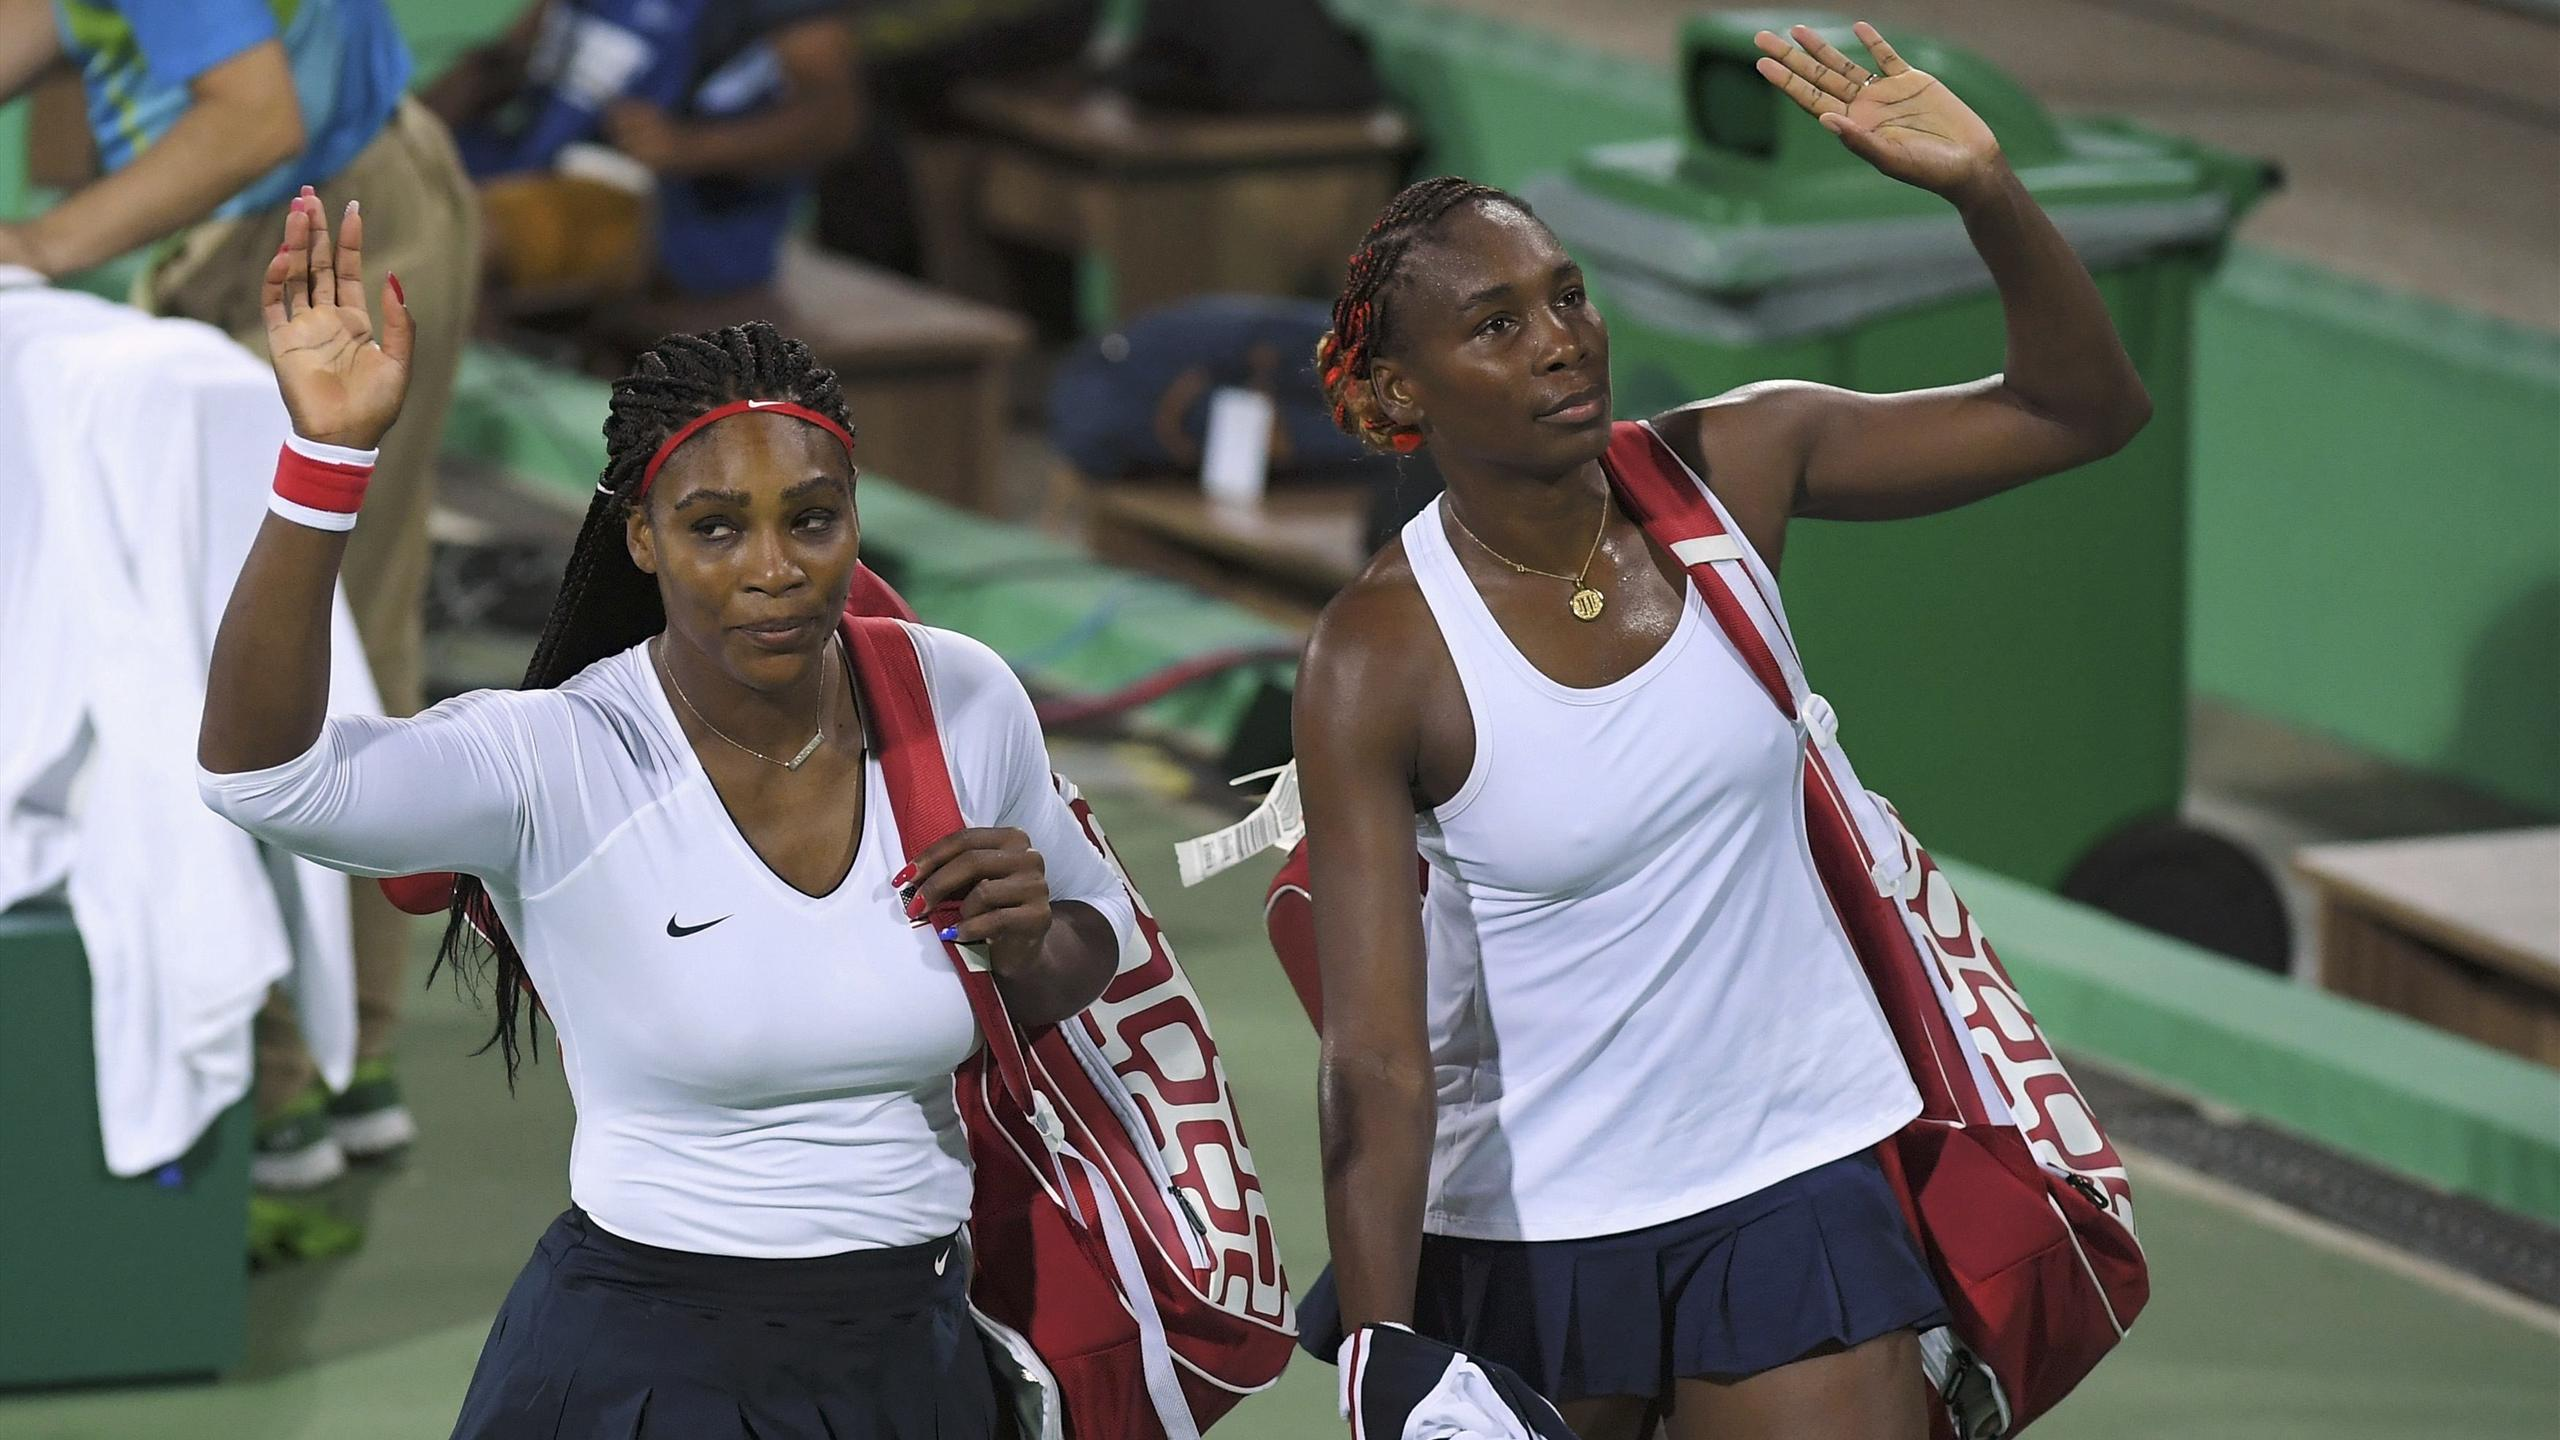 Serena Williams (USA) of USA and Venus Williams (USA) of USA leave after losing their match against Lucie Safarova (CZE) of Czech Republic and Barbora Strycova (CZE) of Czech Republic